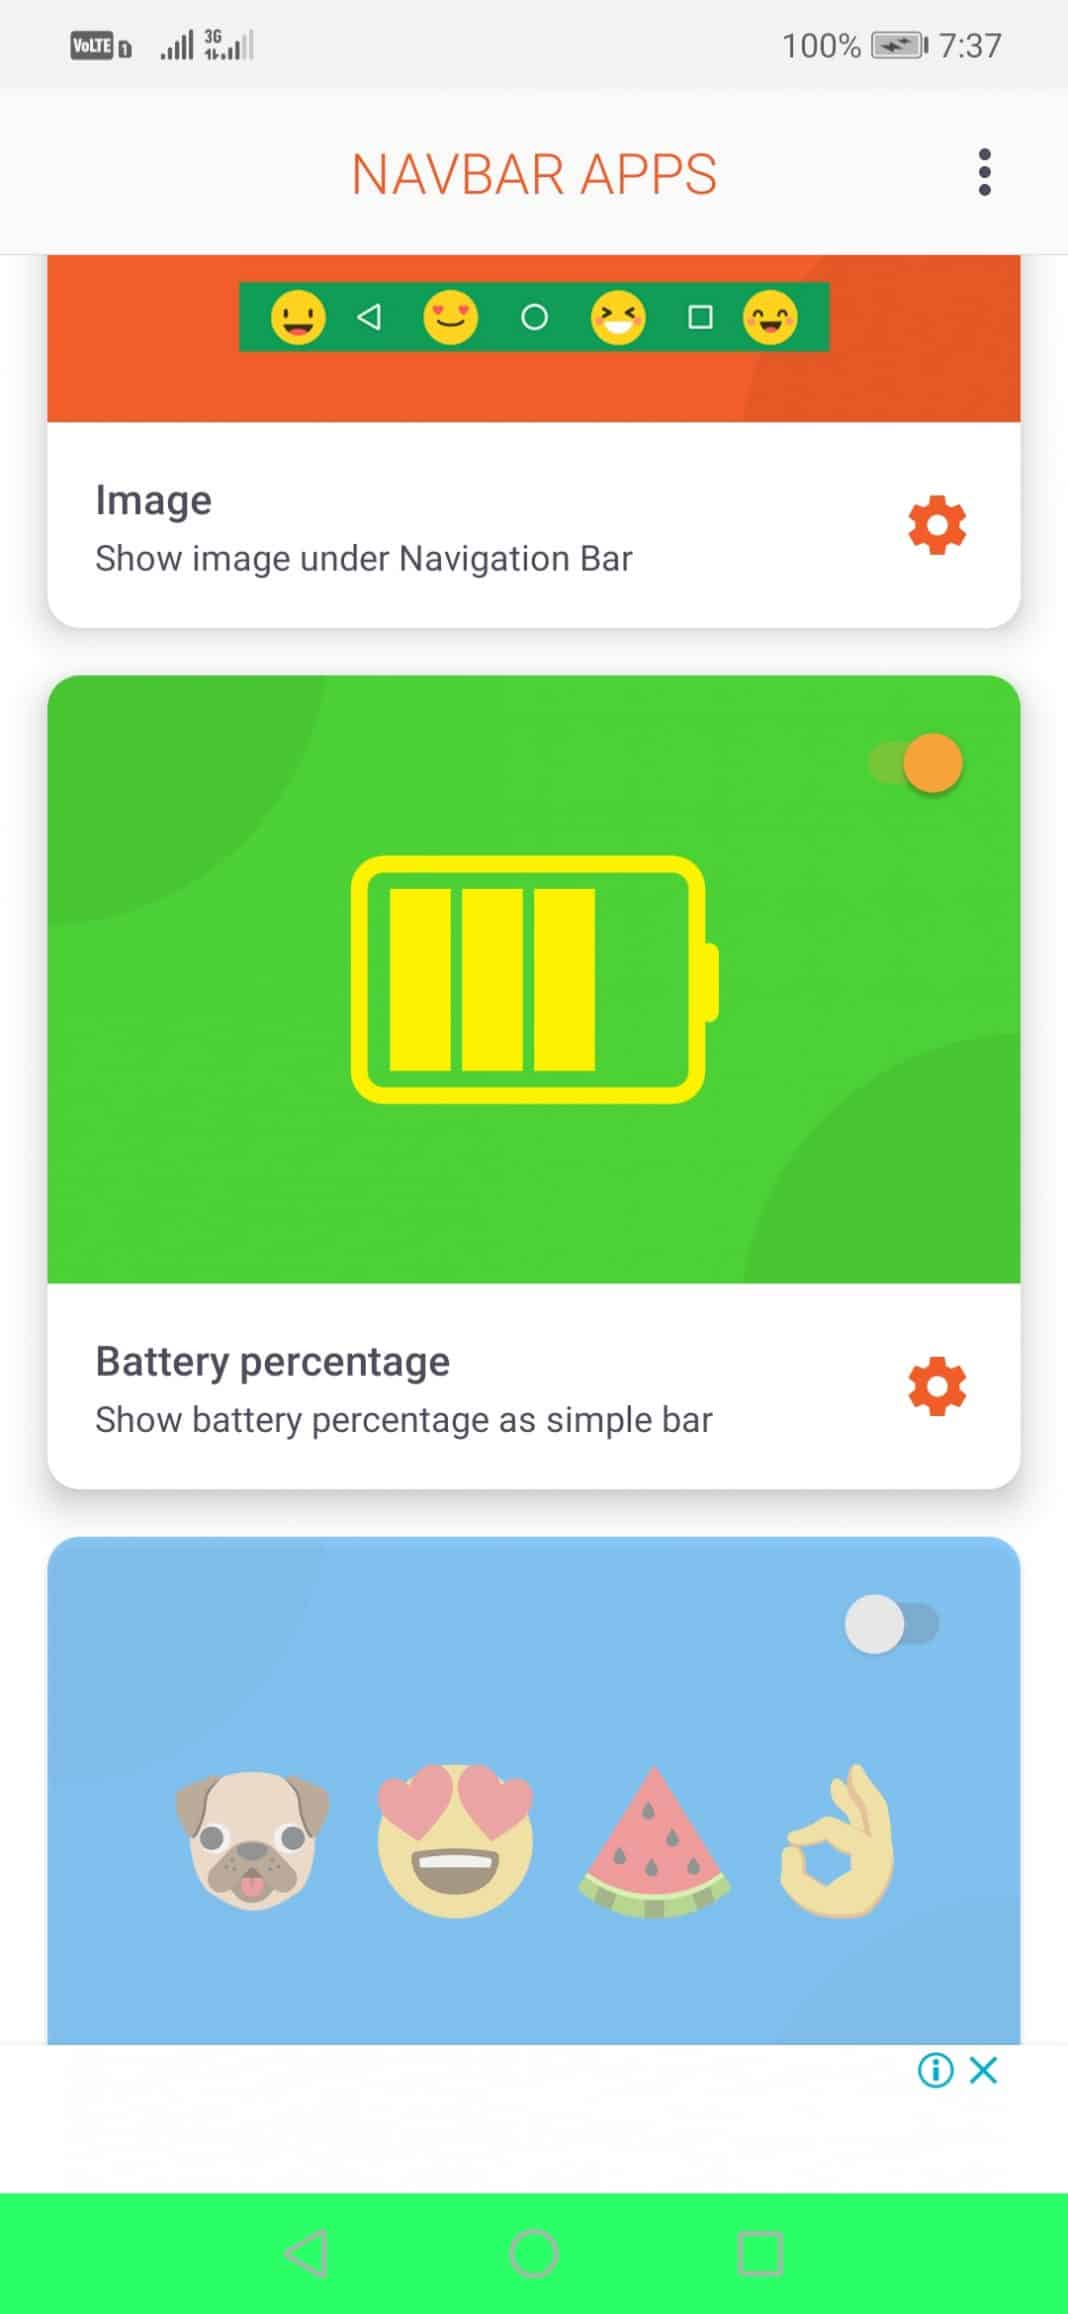 Select 'Battery percentage' to show in the navigation bar